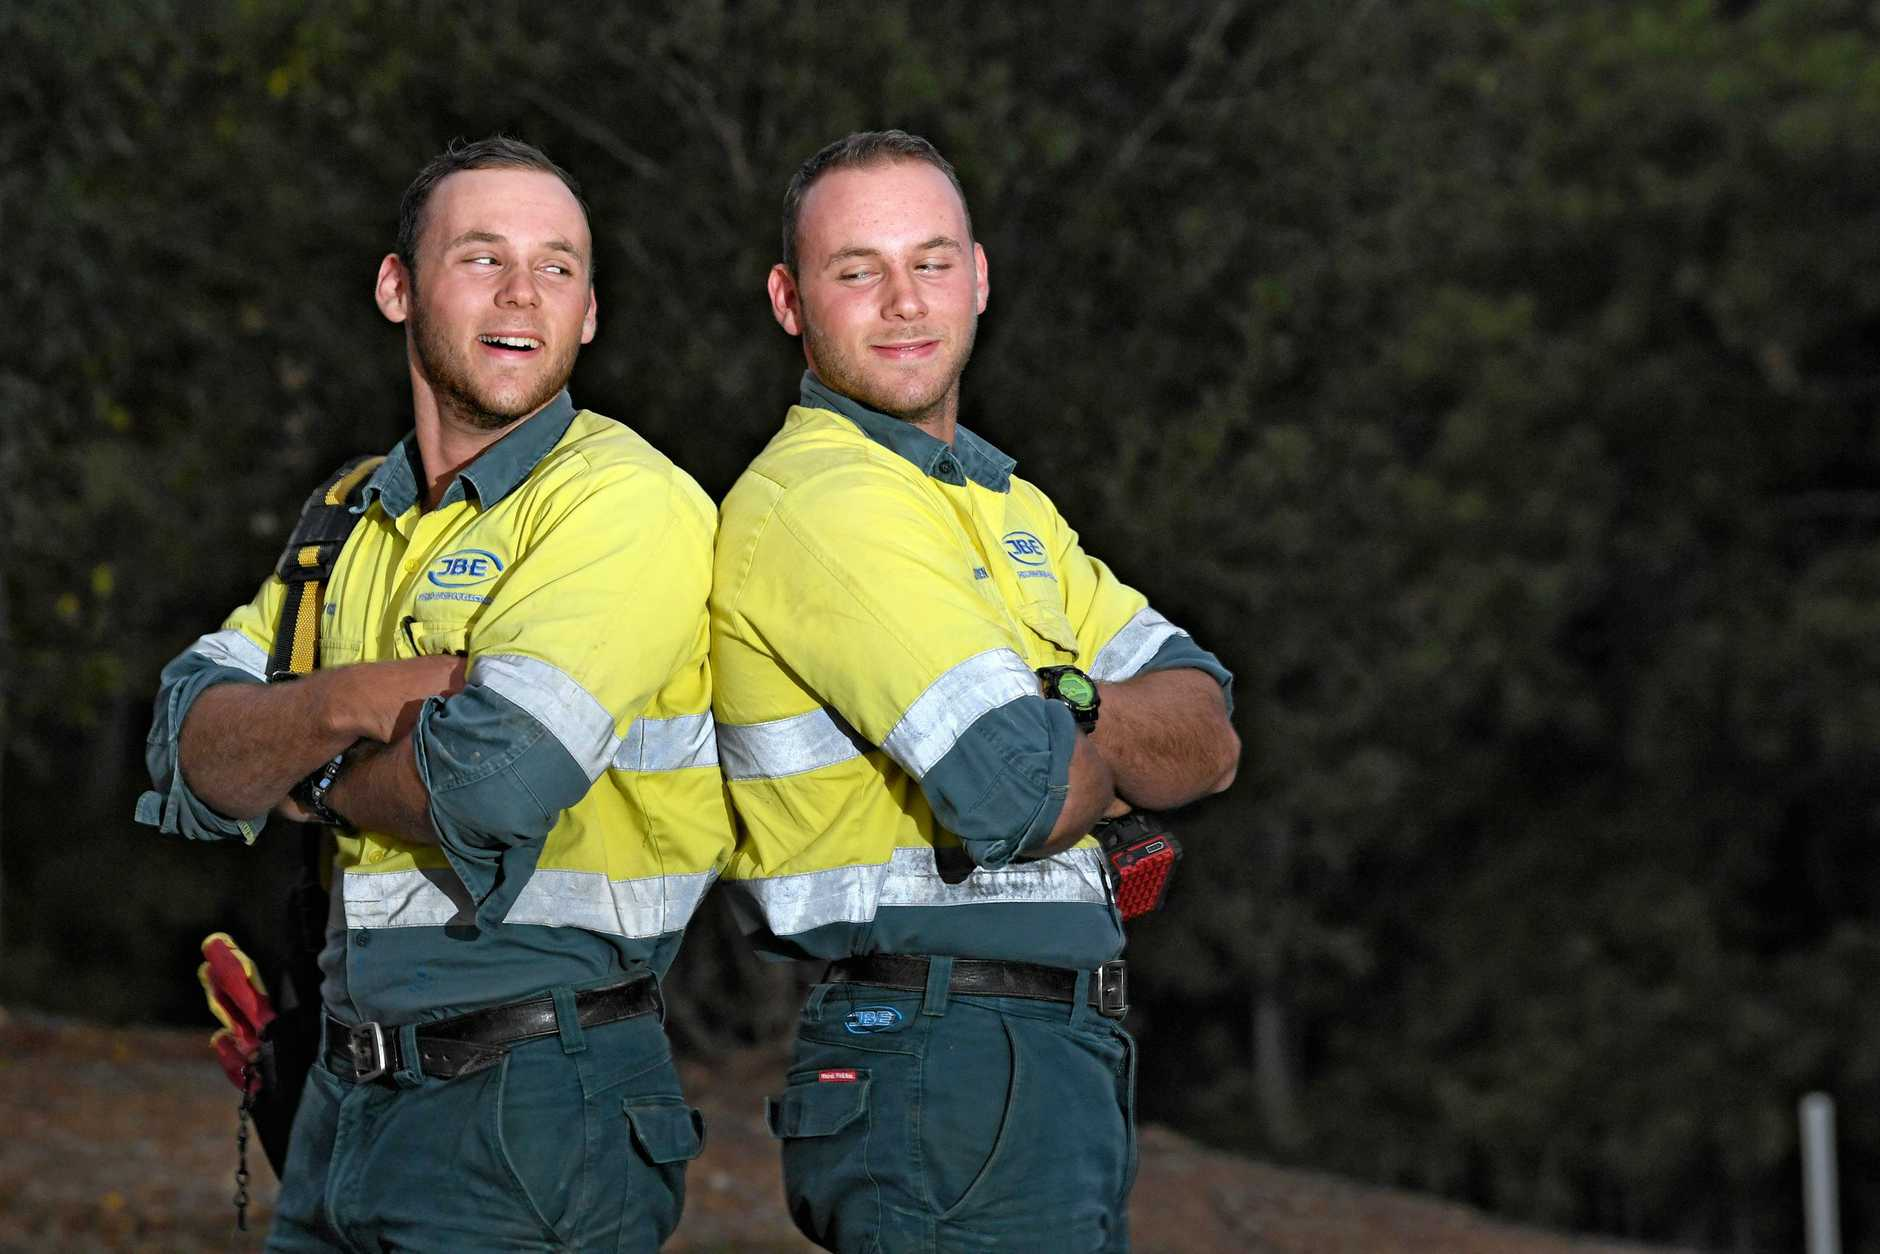 Bachelors Bryce and Kieren Googe from Gympie.